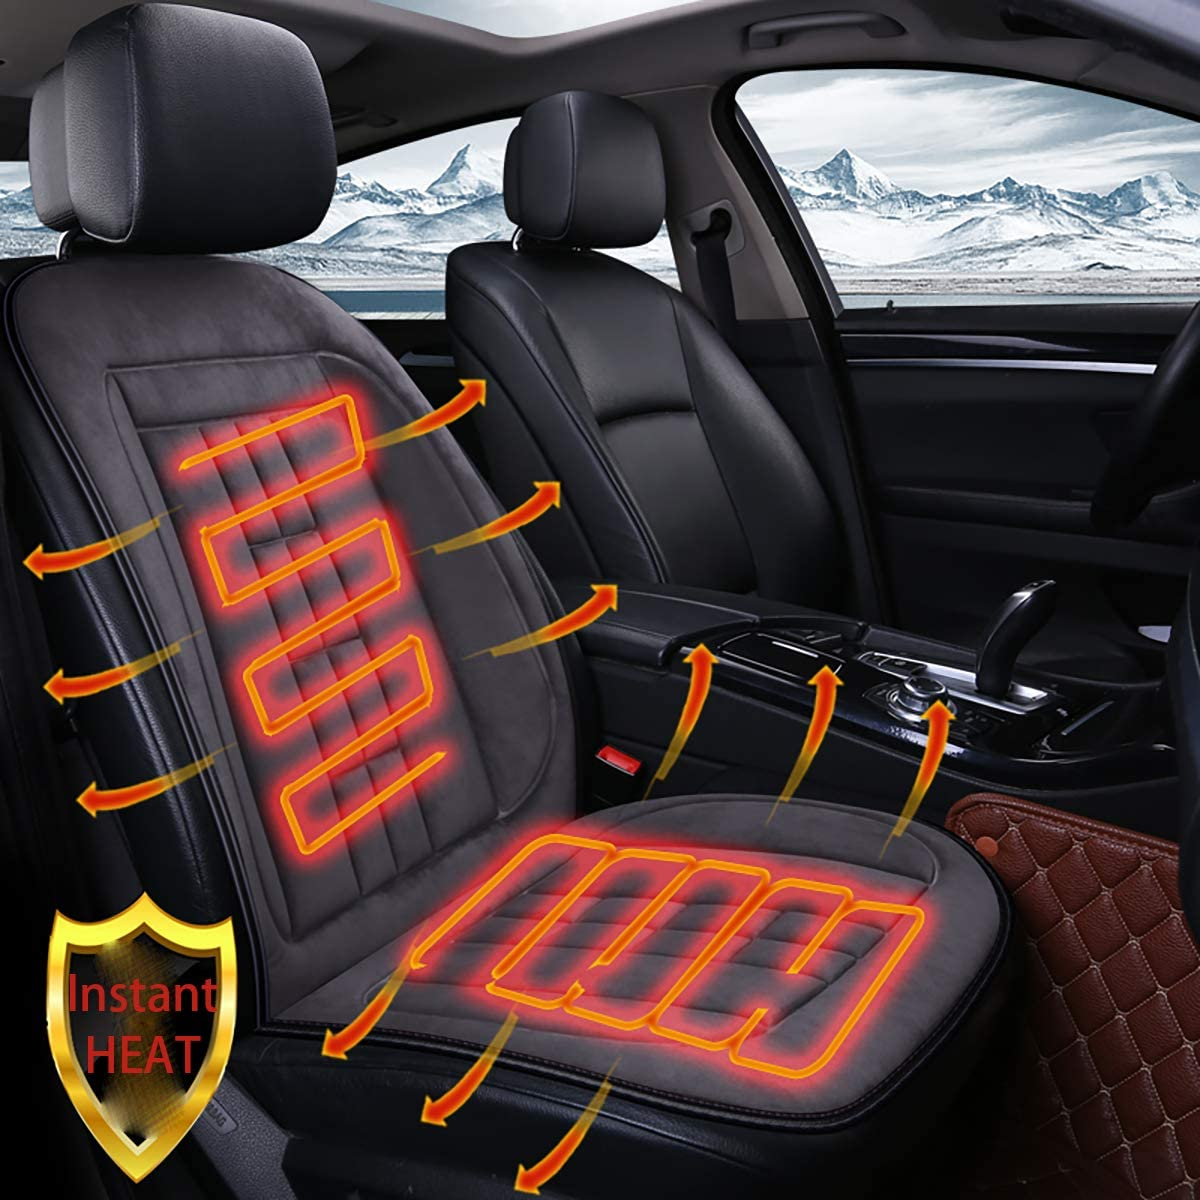 INCH EMPIRE Heating Car Seat Cover Non-Slip Fast Heat Pad Velvet Surface 12V Electronic Heated Universal Fit Simple Style with Stitched Square Warm for All Types of Cars in Cold Winter Grey Square